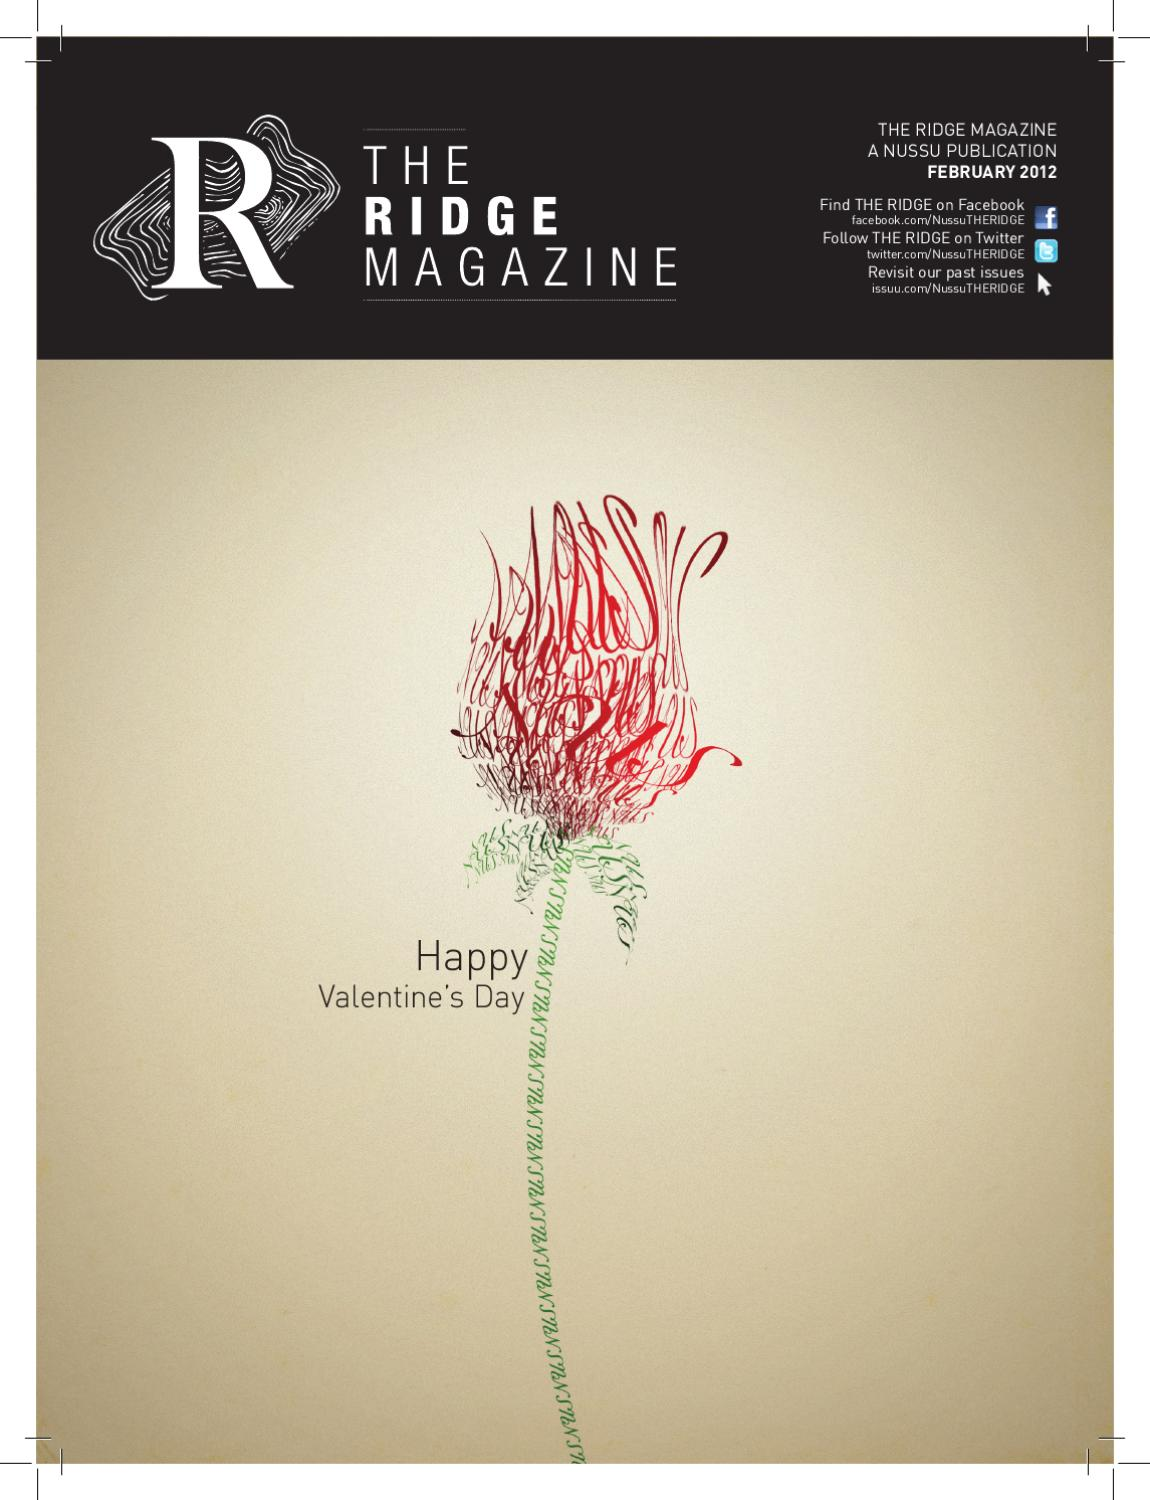 The Ridge February 2012 By Issuu Lovotics A New Robot Race That Can Love